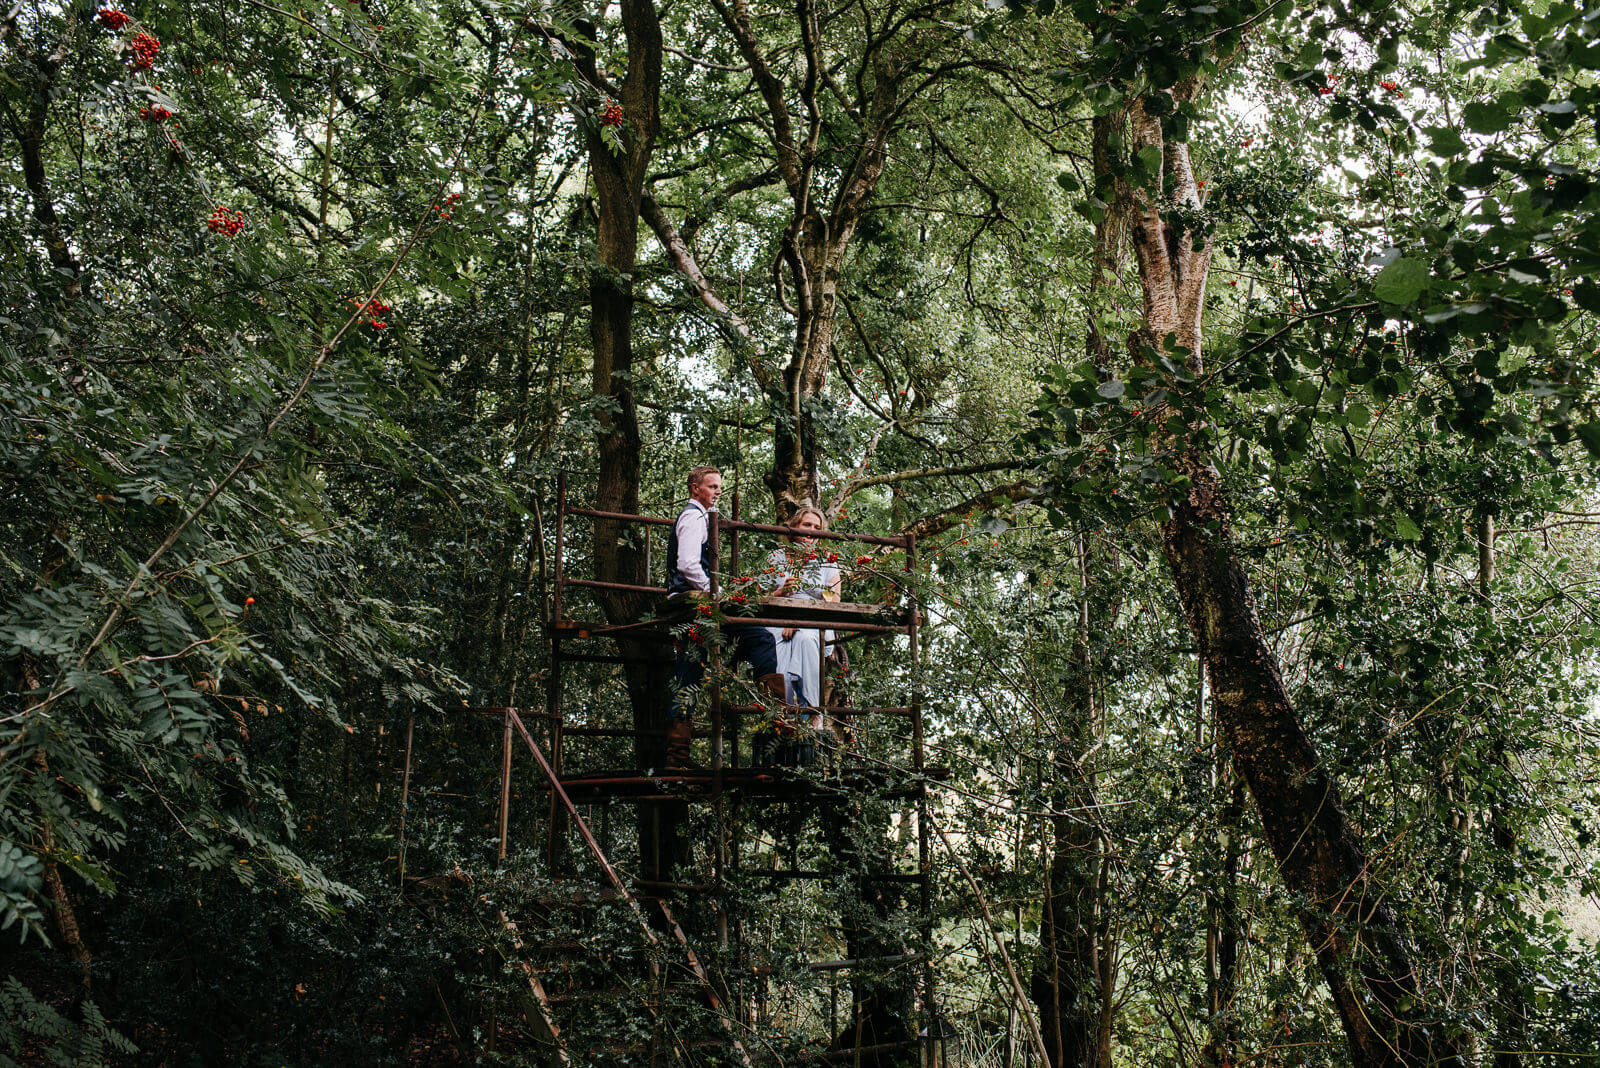 Wedding guests enjoying the woodland tree house at a Shropshire festival wedding